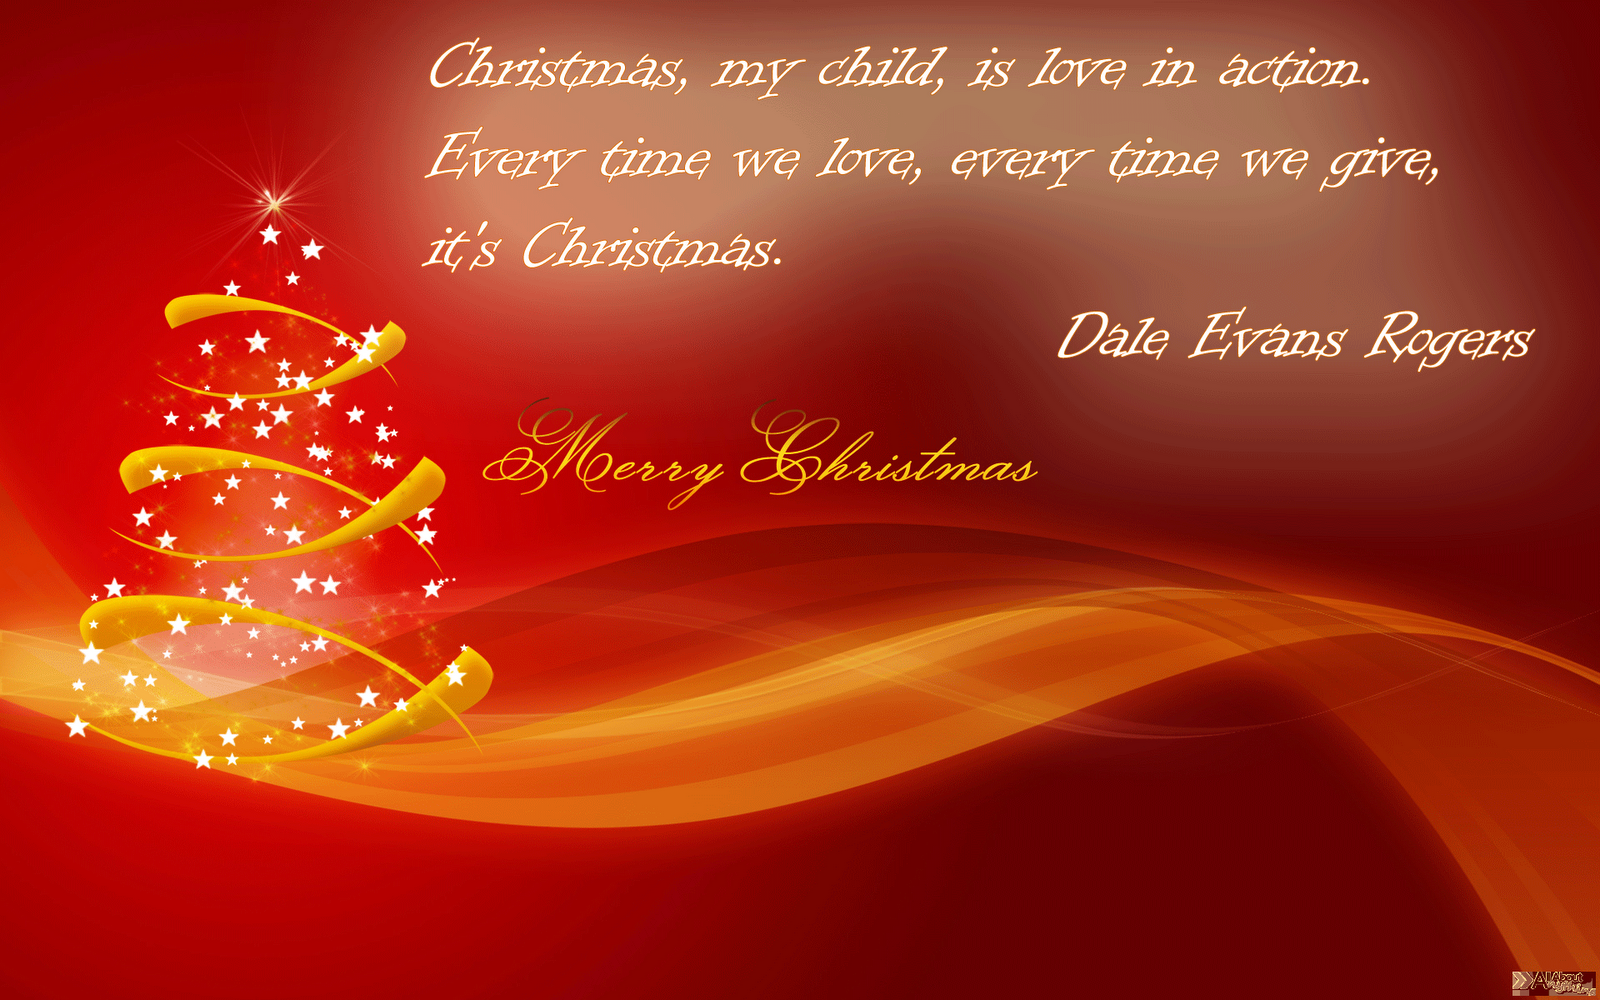 Christmas Text Messages: Christmas Quotes in Cards